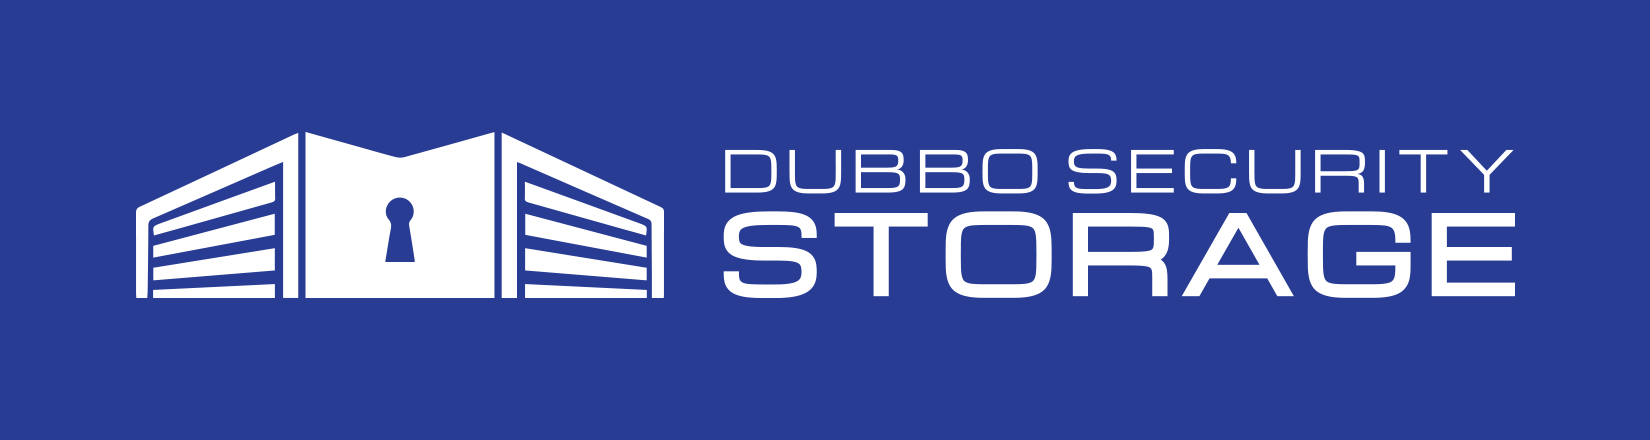 Dubbo Security Storage Logo